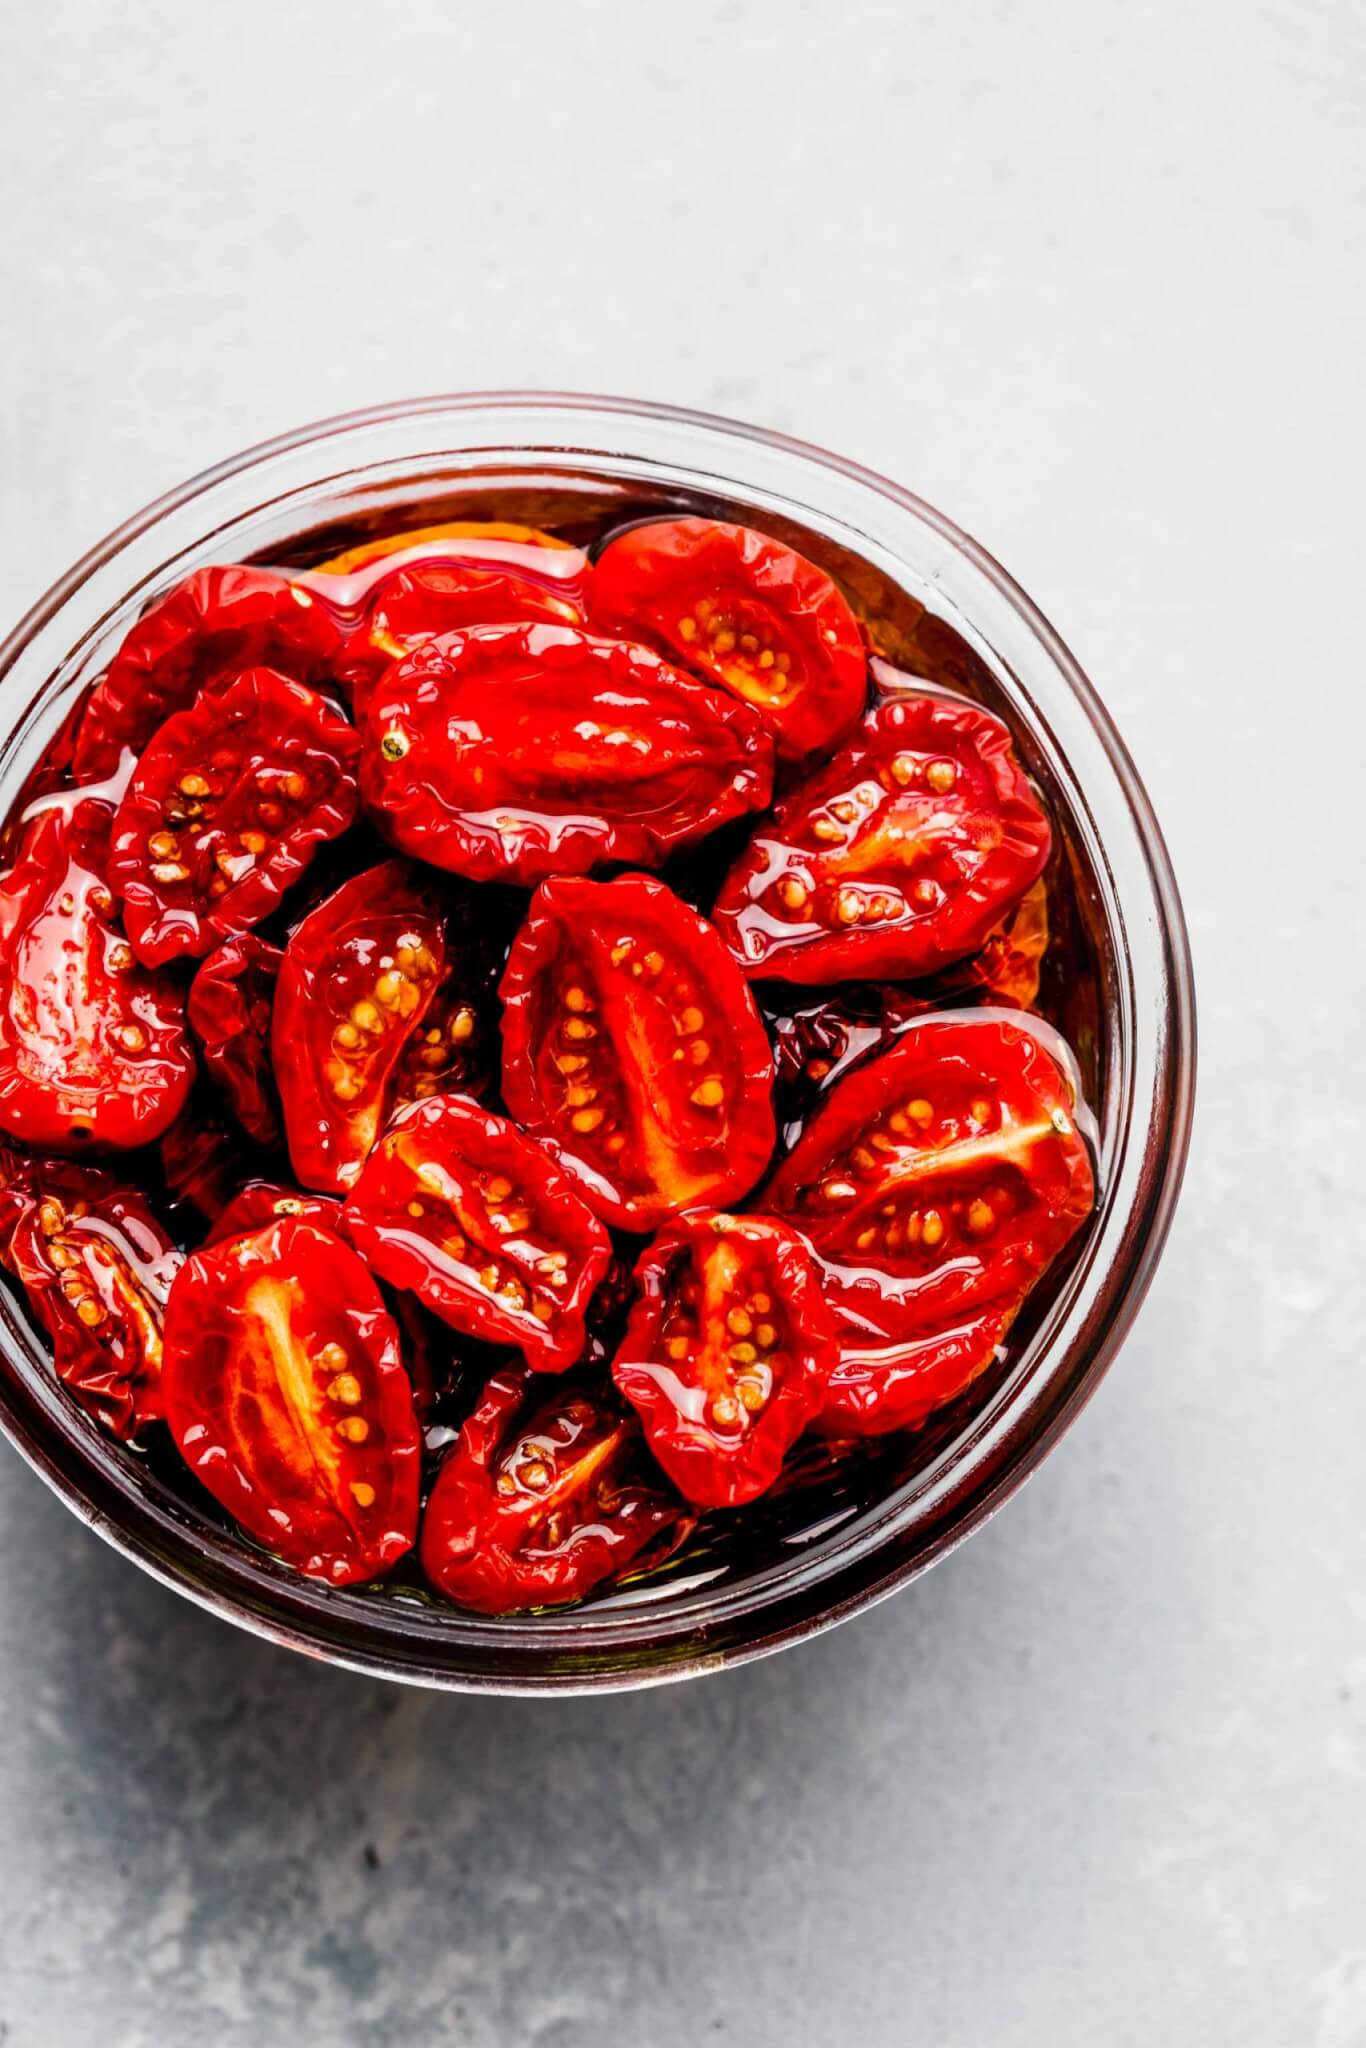 Jar of sun dried tomatoes packed in oil